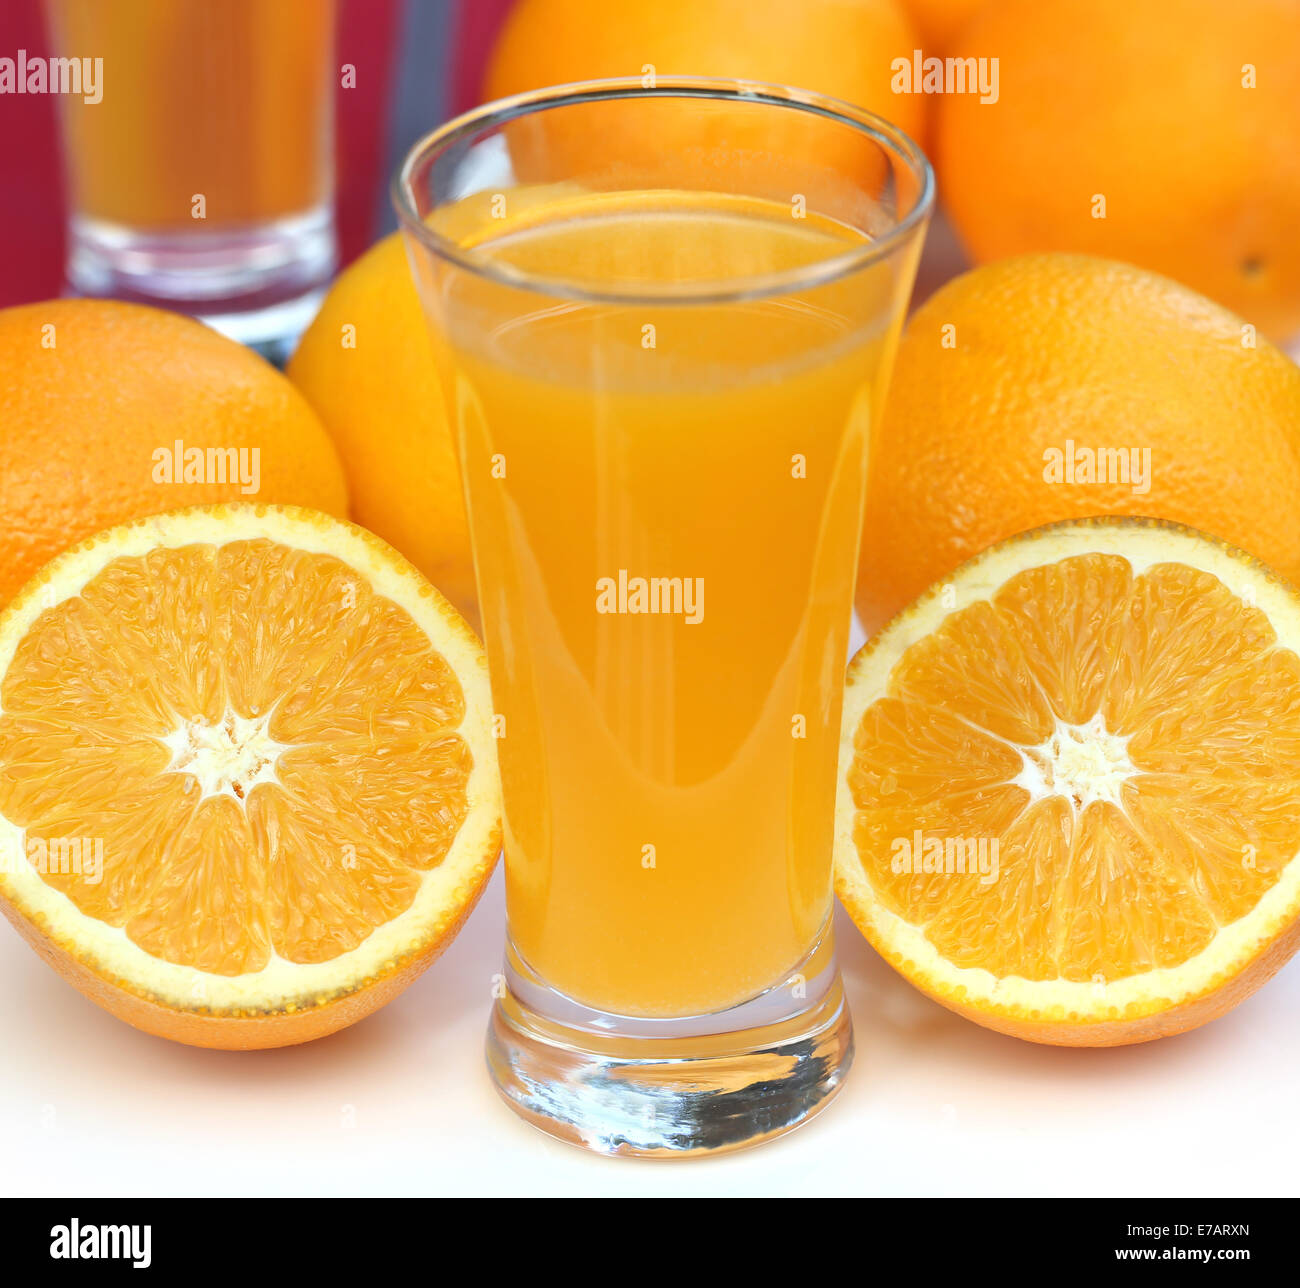 Oranges with glass of juice over white - Stock Image